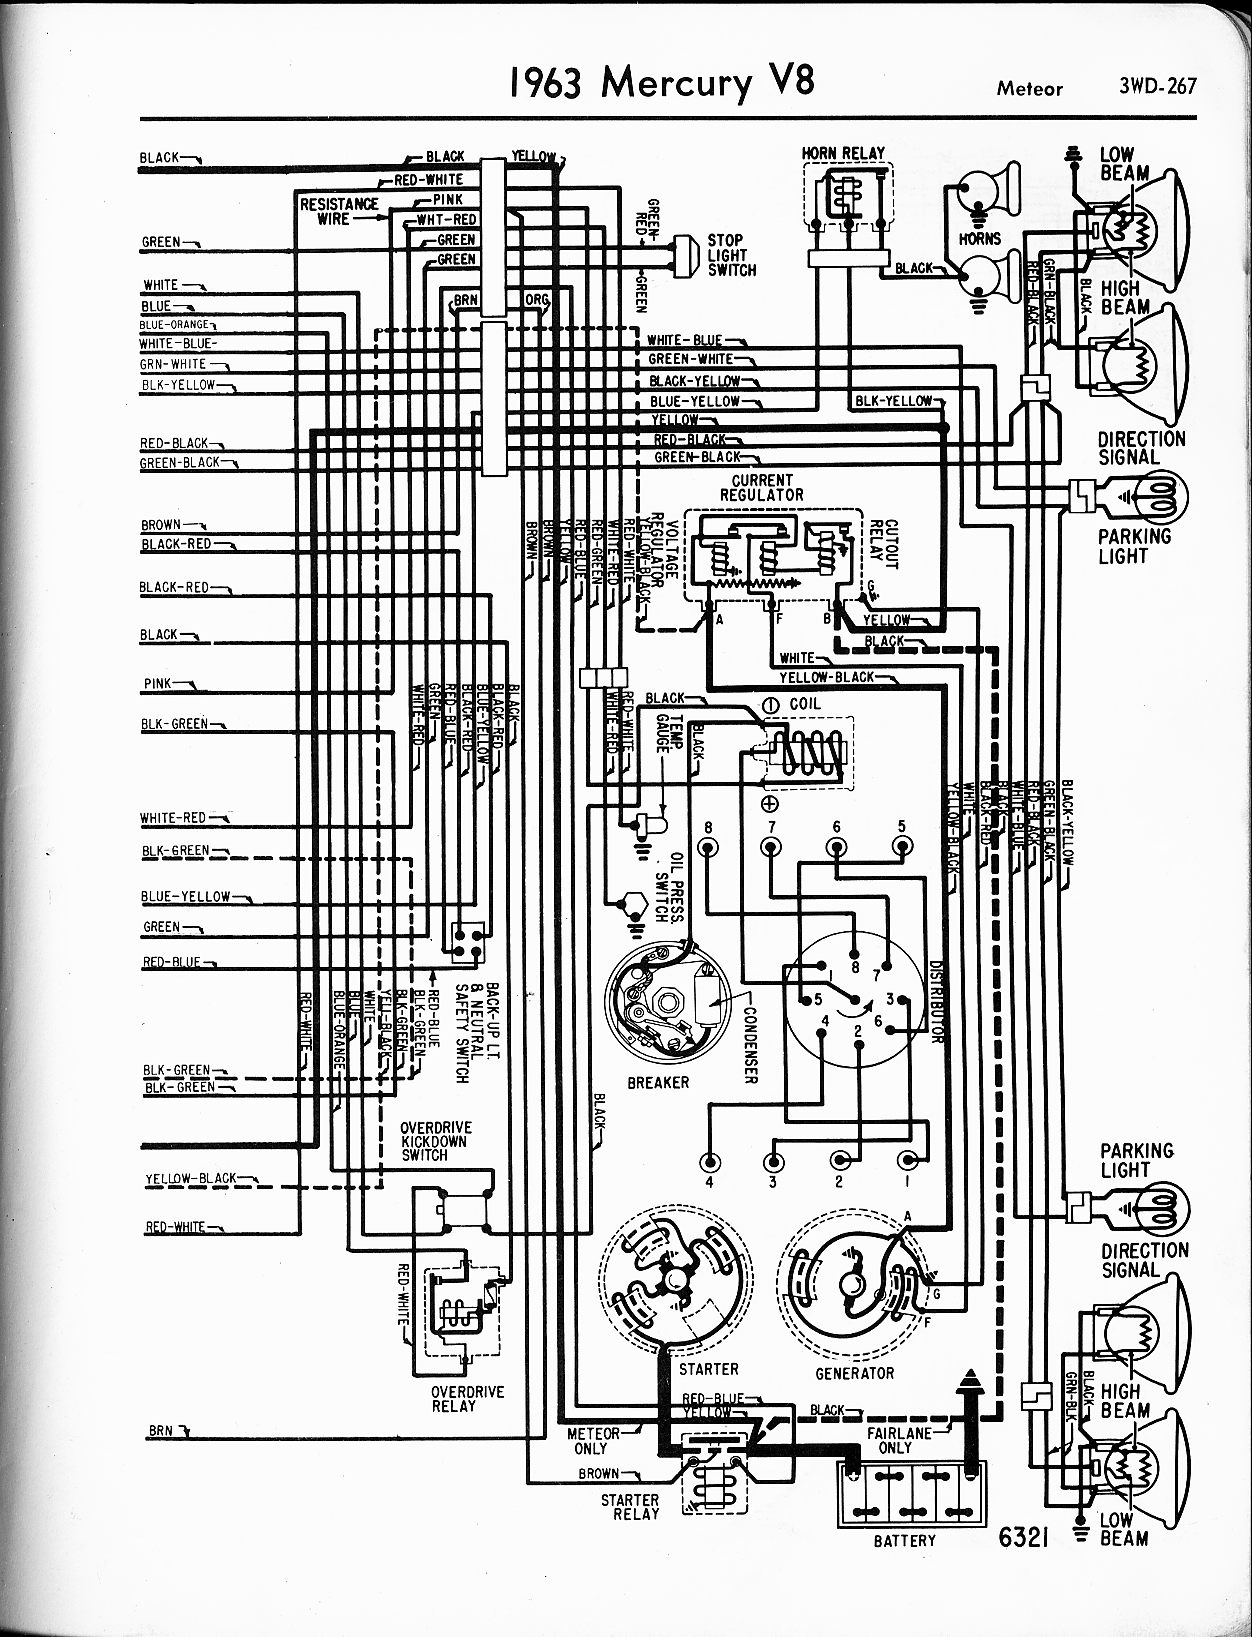 Wiring diagram further 1987 chevy truck wiring diagram moreover 1963 rh dasdes co